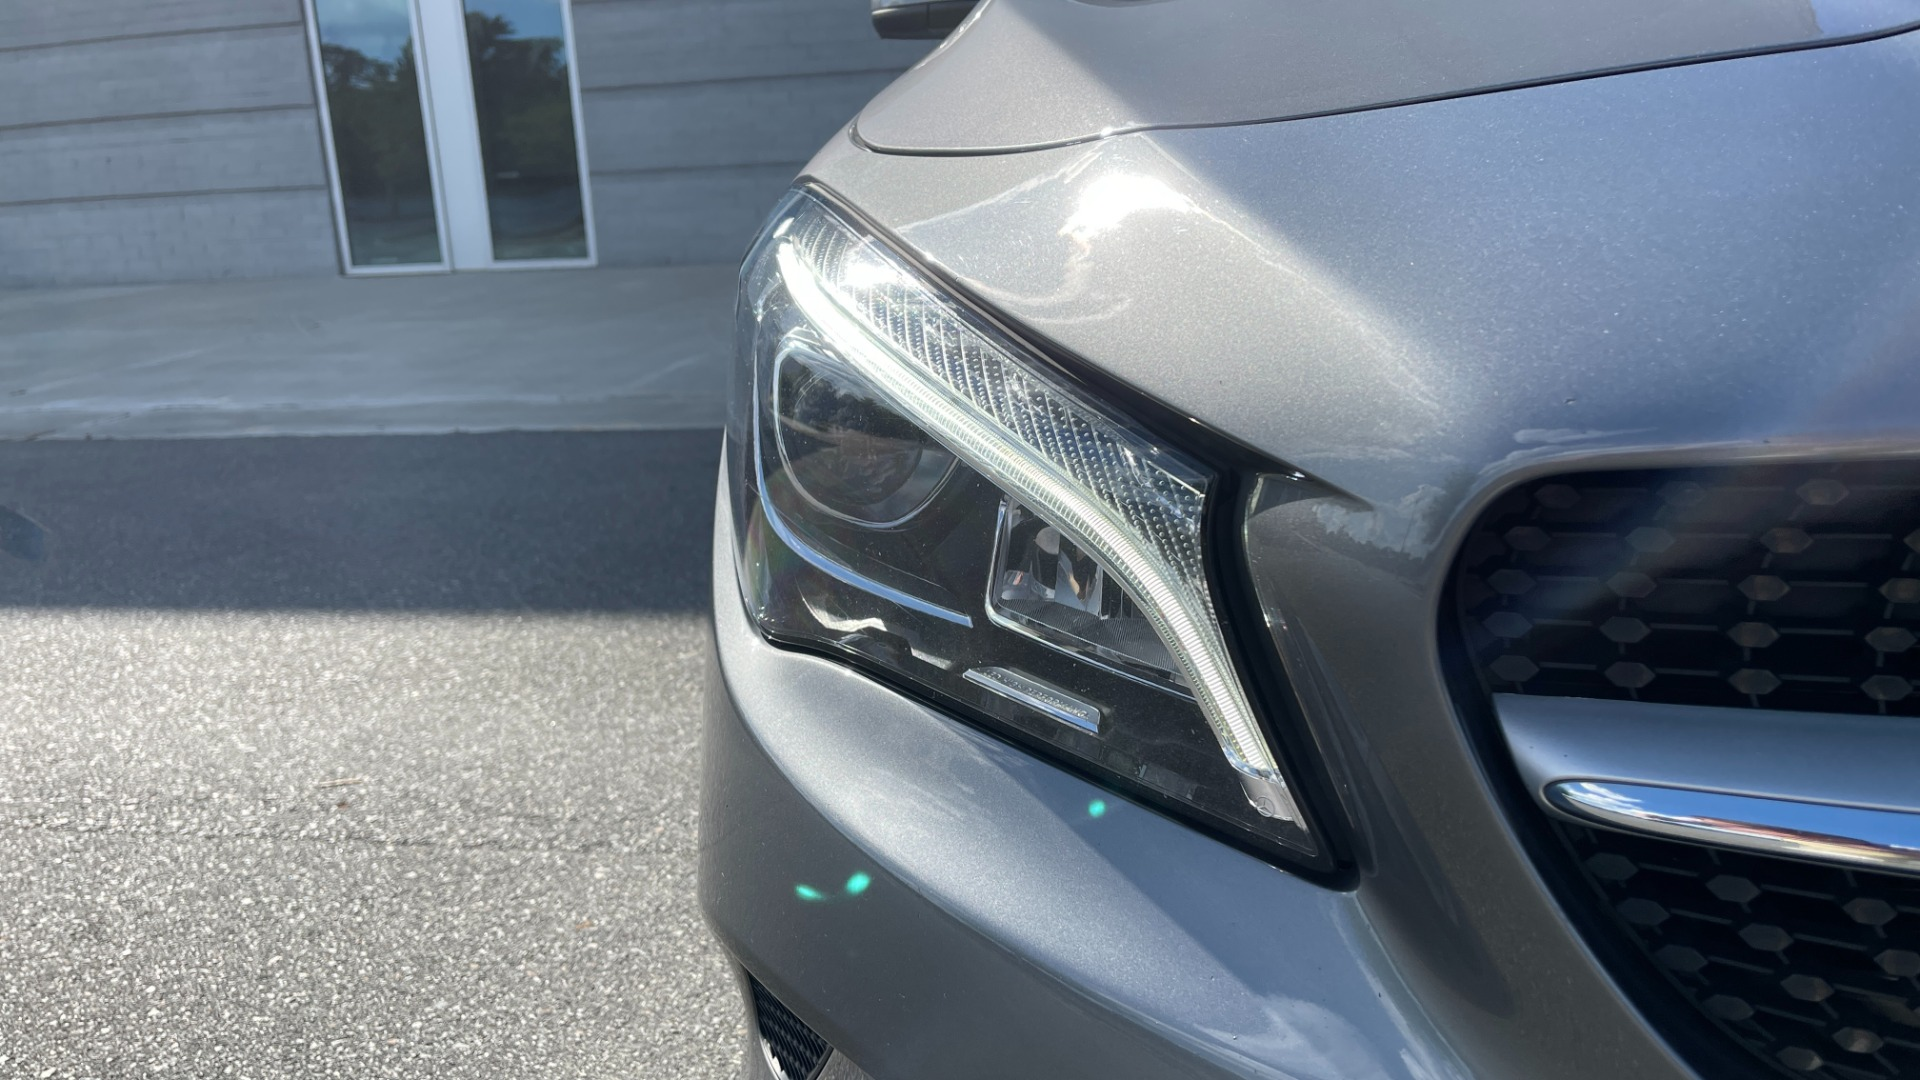 Used 2019 Mercedes-Benz CLA 250 4MATIC PREM & CONV PKG / APPLE / PANO-ROOF / H/K SND / REARVIEW for sale $29,795 at Formula Imports in Charlotte NC 28227 14